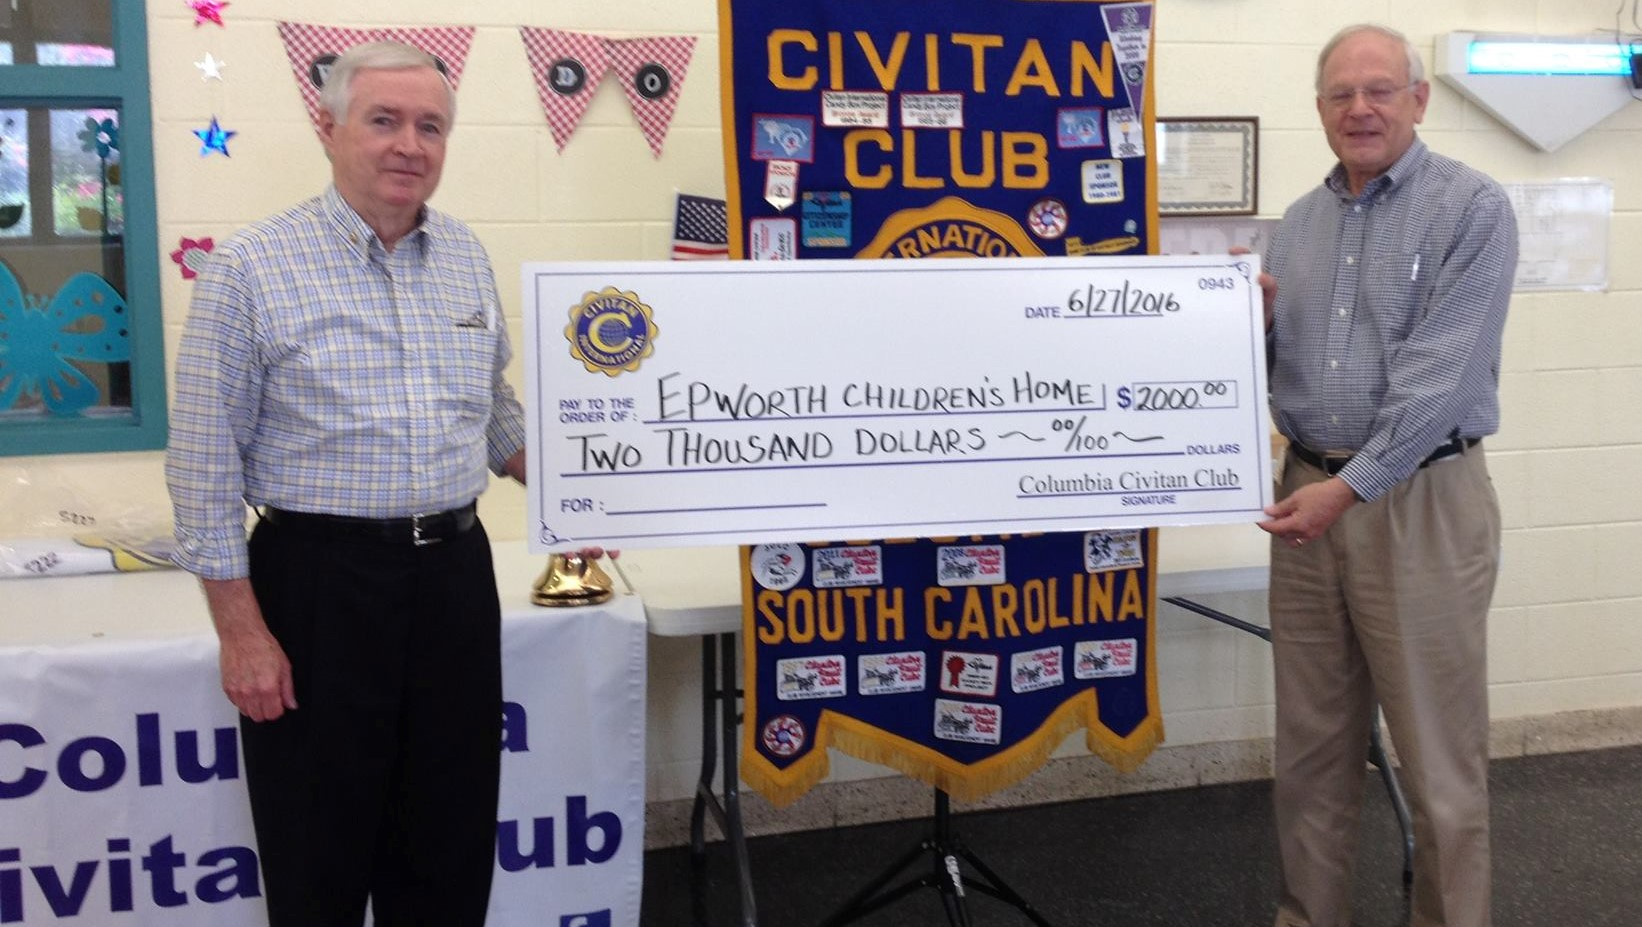 Columbia Civitans support Epworth Childrens Home